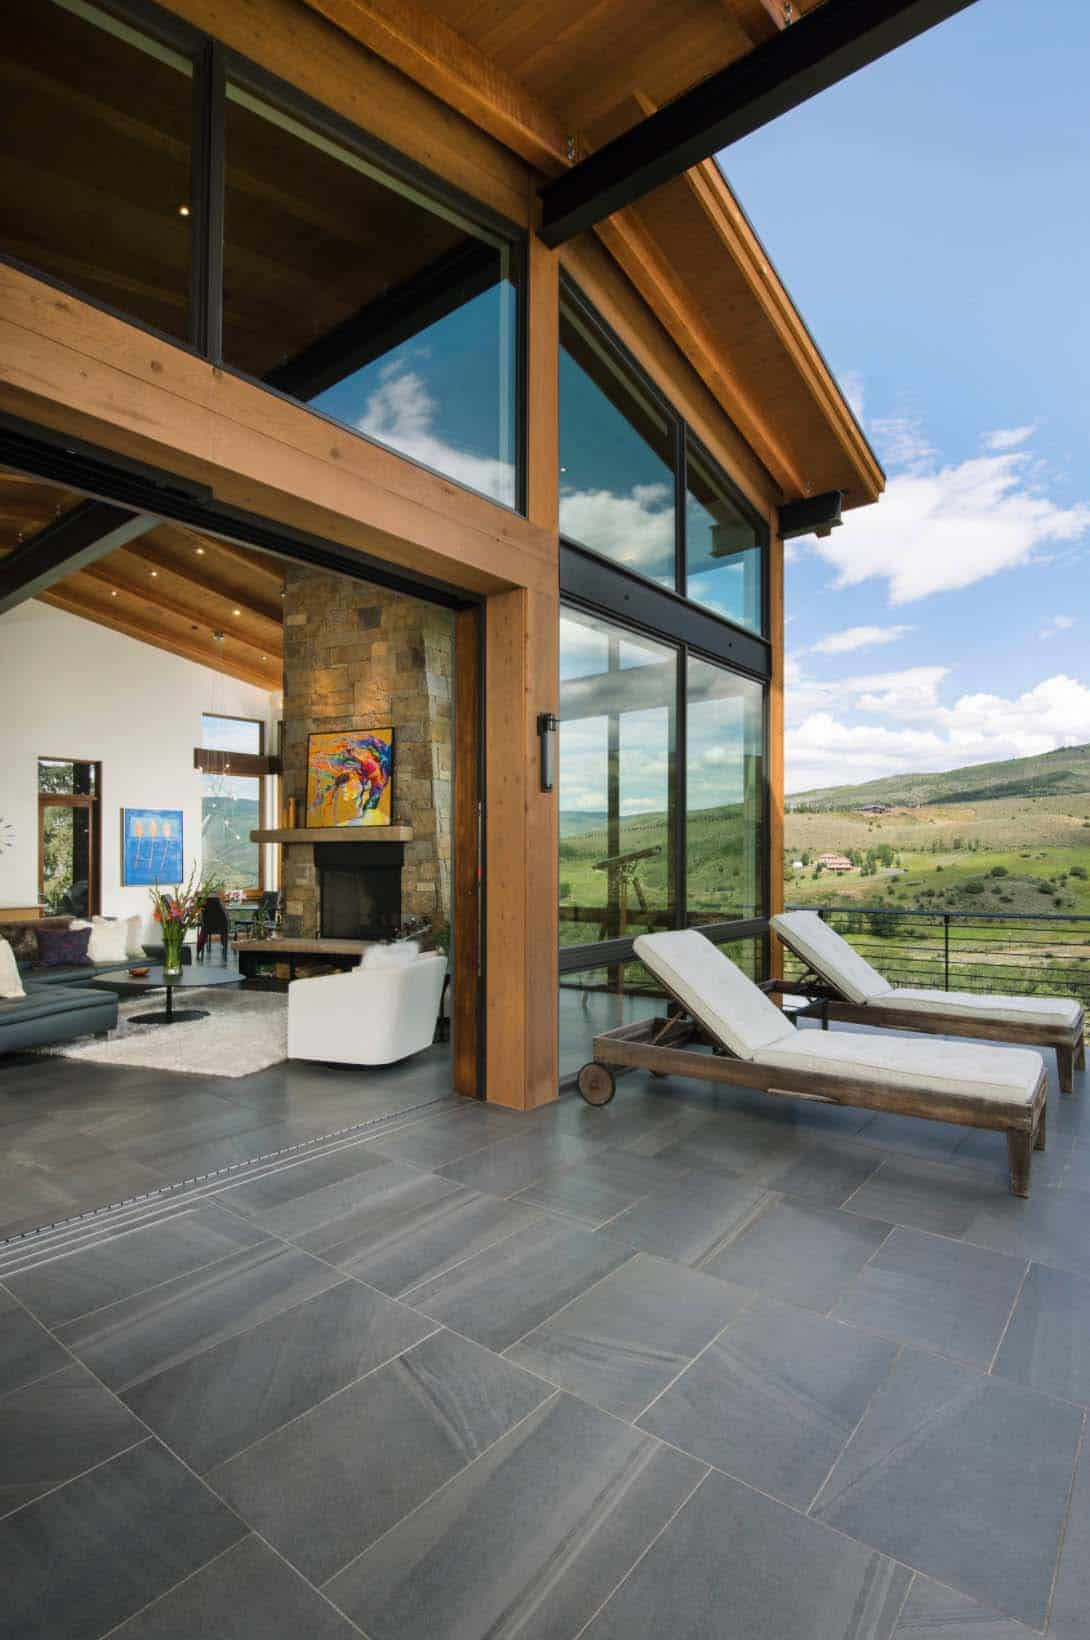 Contemporary Mountain Home Renovation-Berglund Architects-15-1 Kindesign